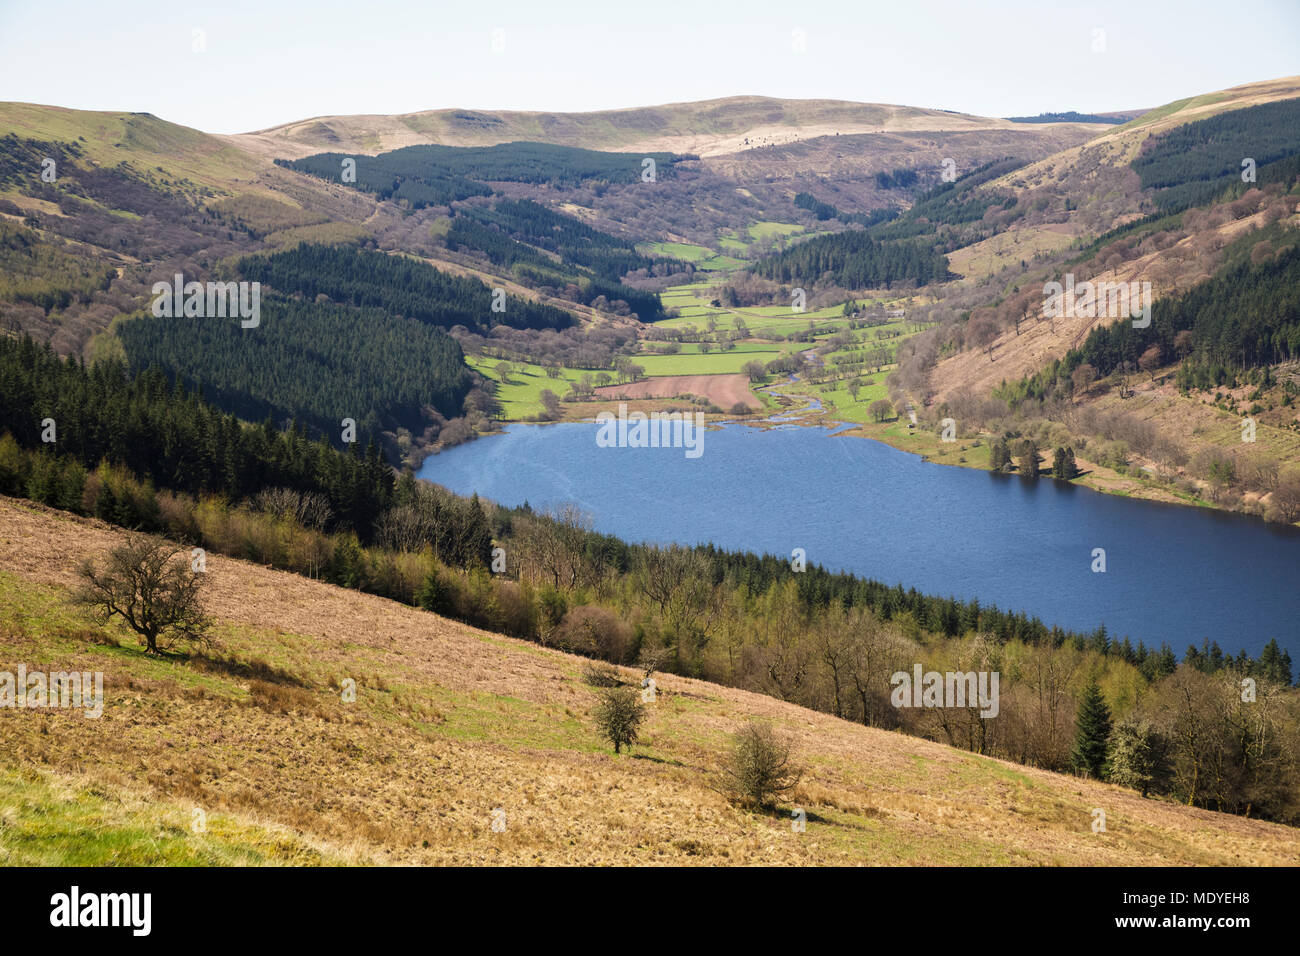 Looking Down on the Talybont Valley and Reservoir in the Brecon Beacons National Park - Stock Image